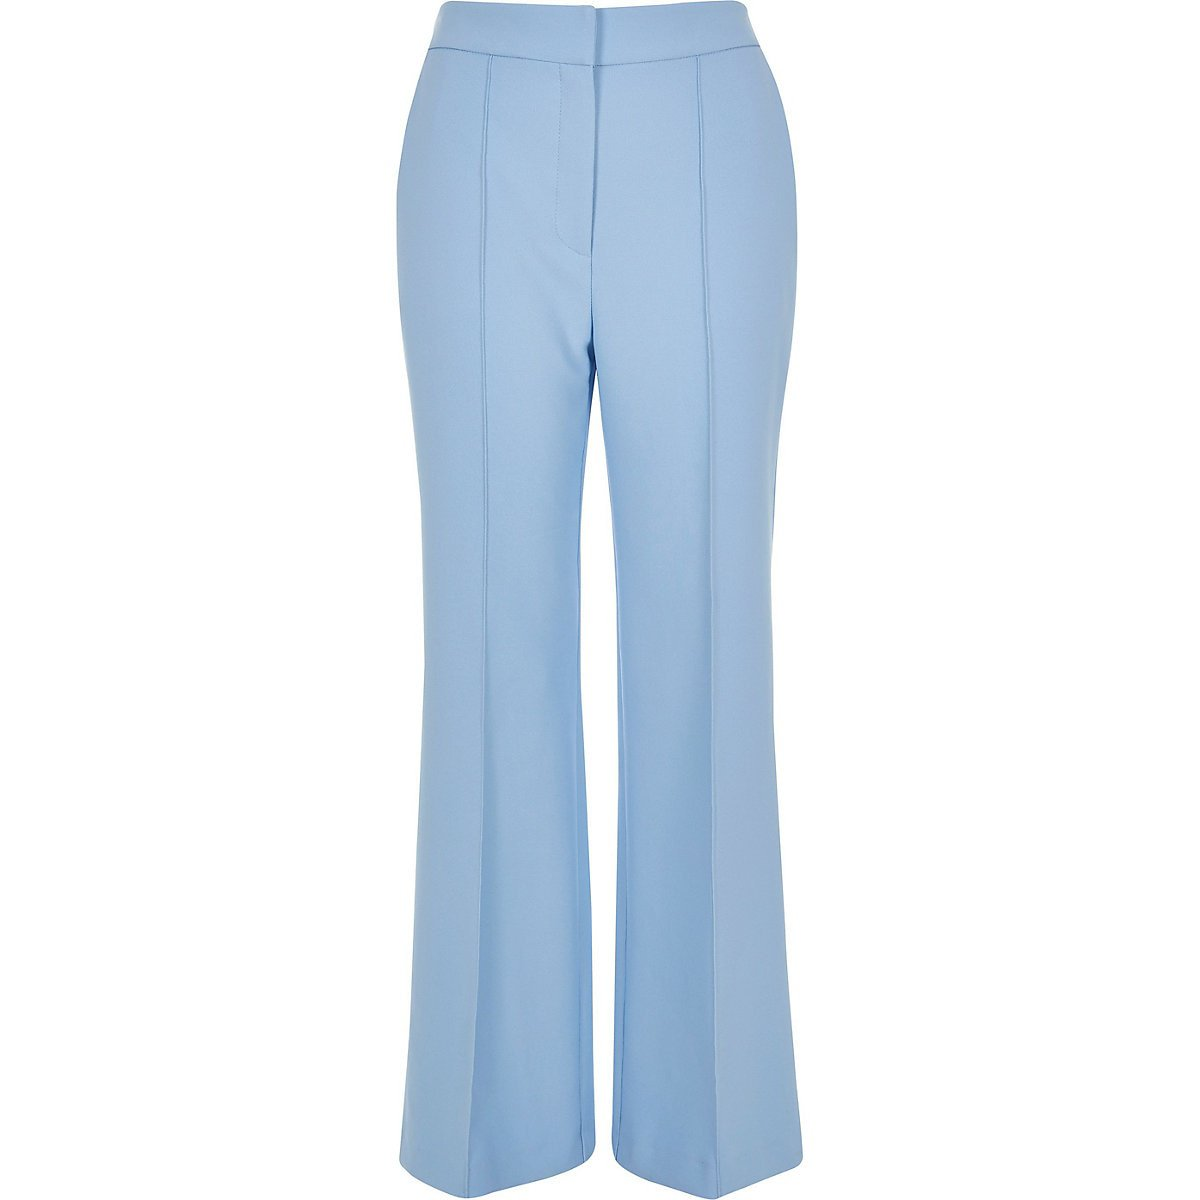 Light blue structured flared trousers - Flared - Trousers - women